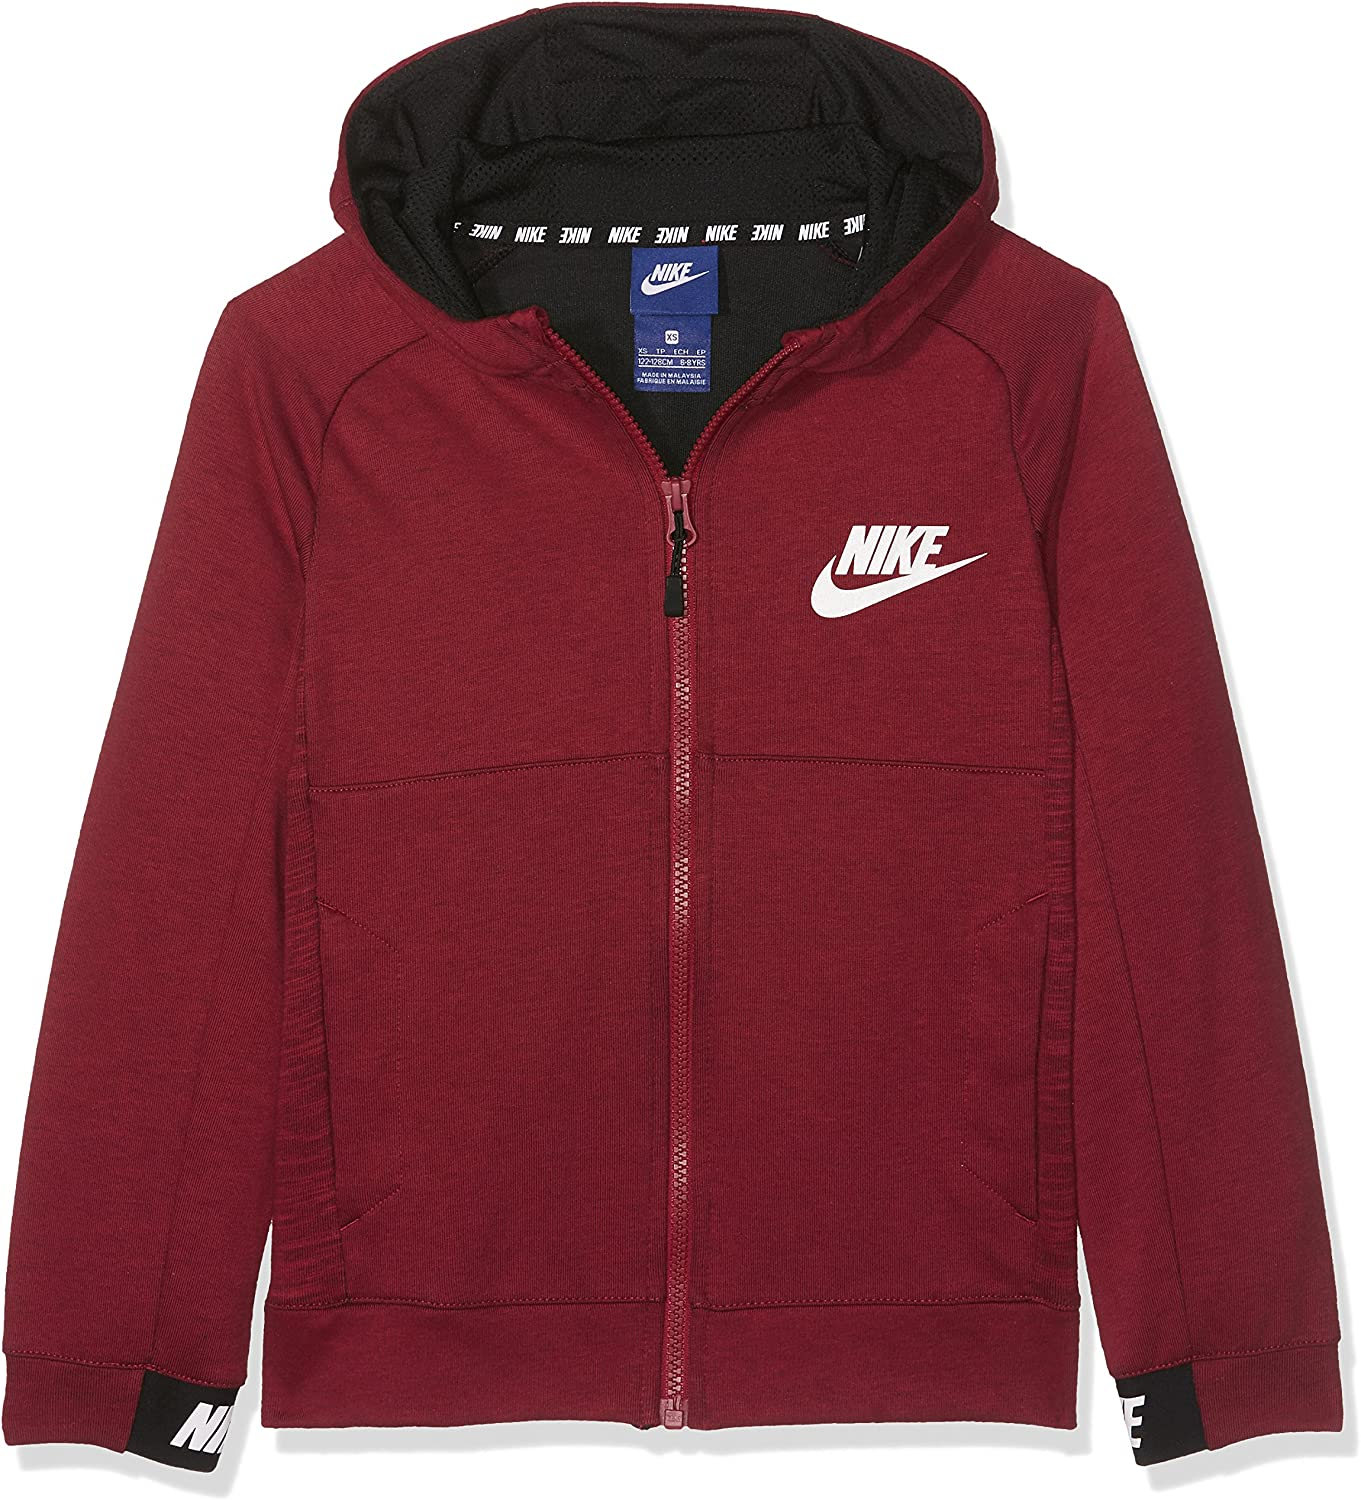 Nike Advance 15 Veste à Capuche Garçon, Tough RedBlack